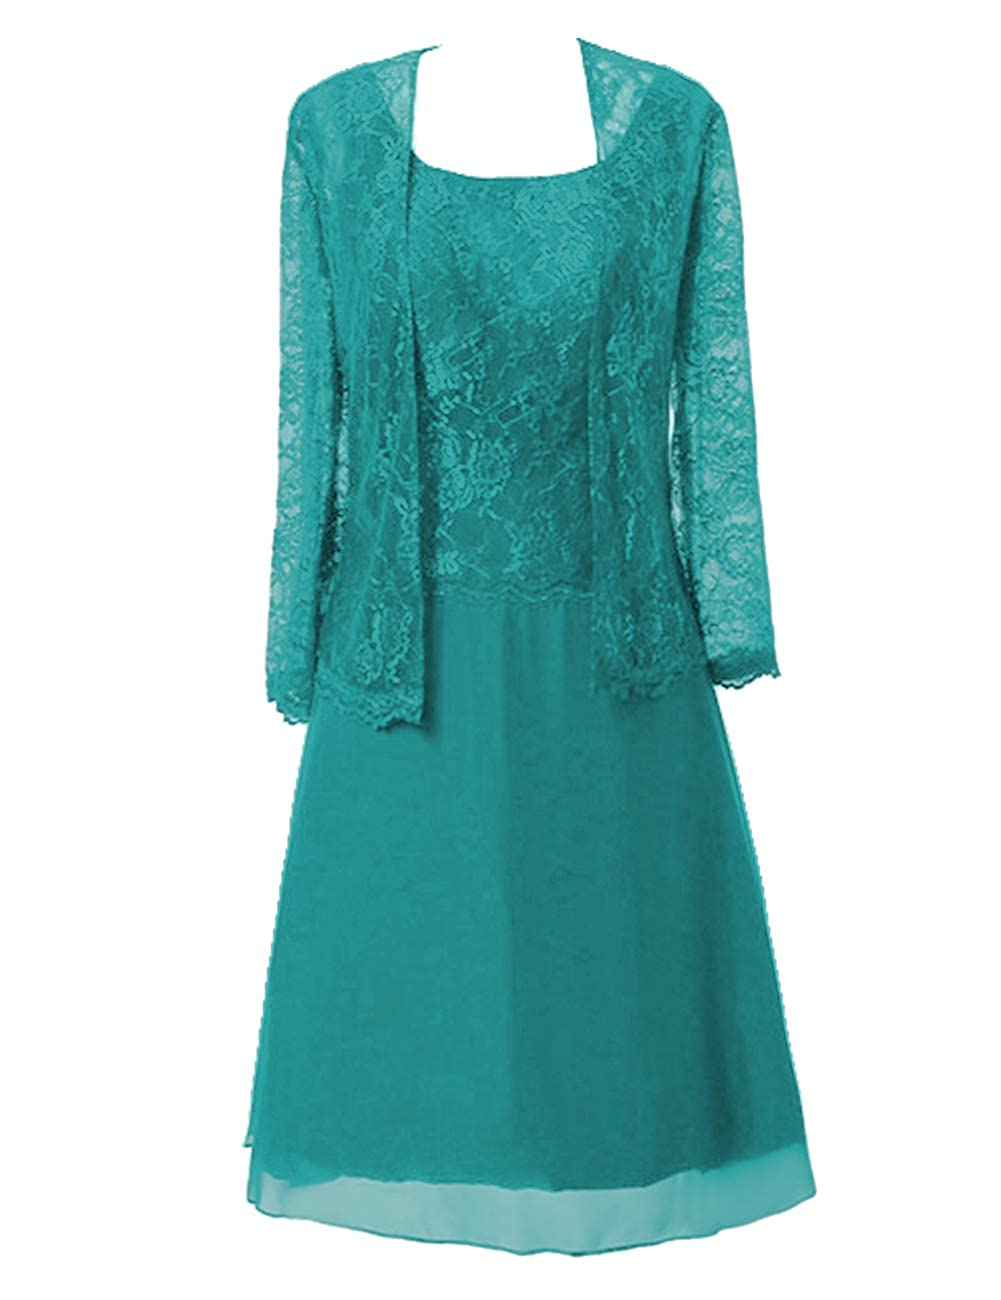 Dark Turquoise Mother of The Bride Dresses Knee Length for Wedding Plus Size Mother Dresses for Women Special Occasion with Jacket